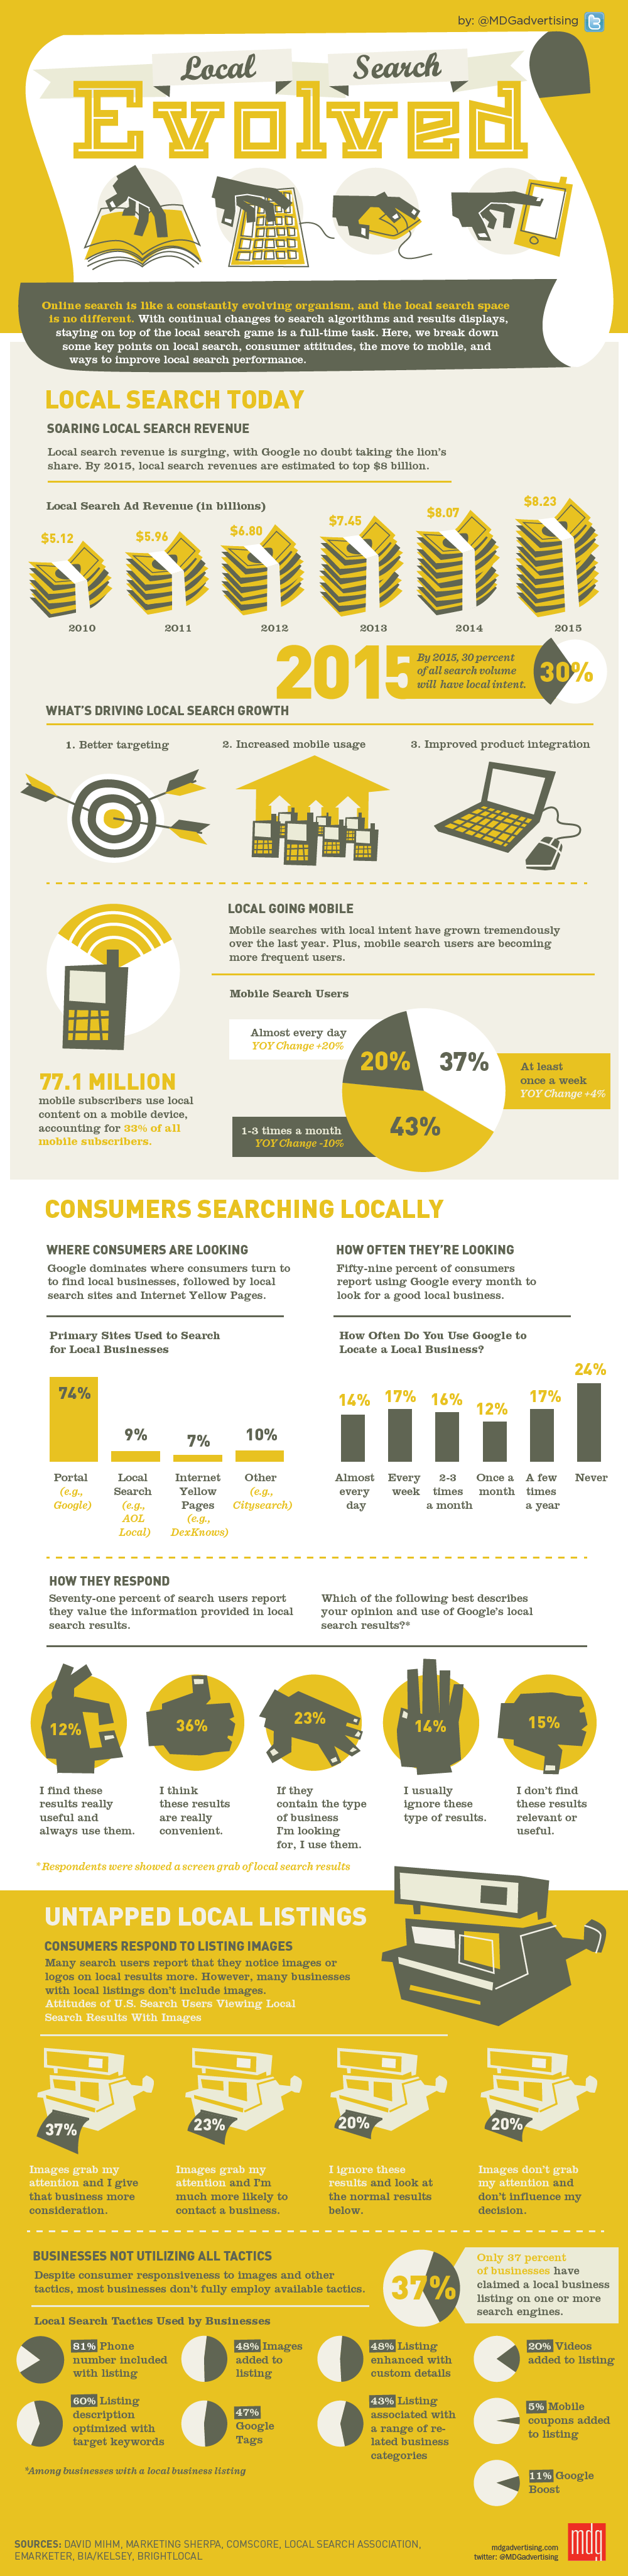 Local Search Evolved #infographic